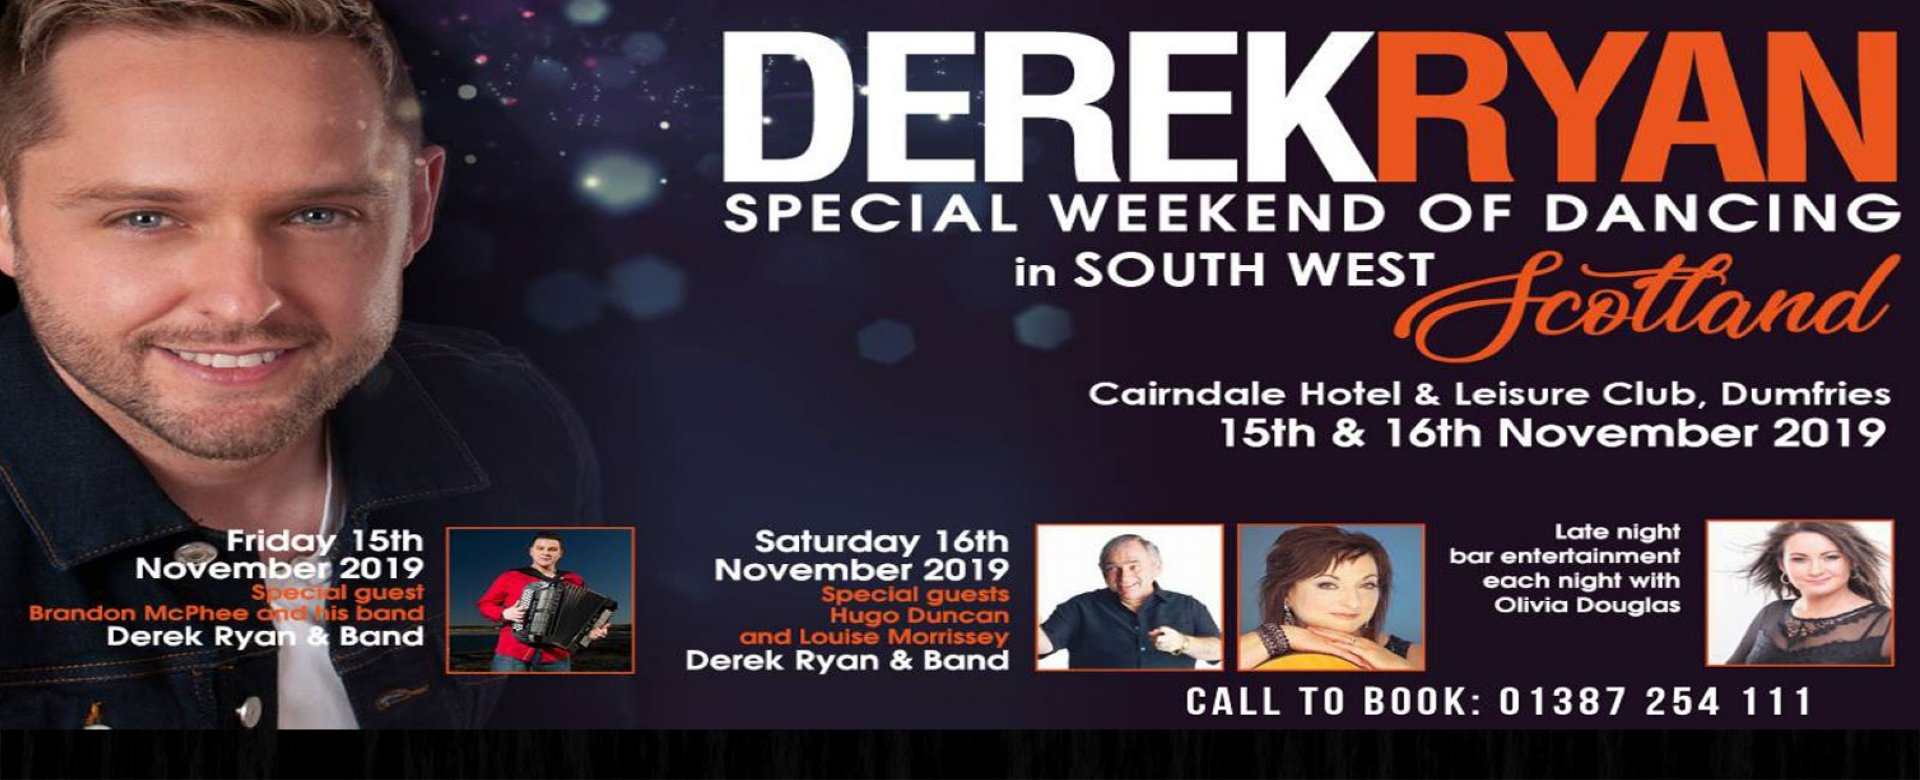 Derek Ryan Weekend | | Scottish Hotel Offers